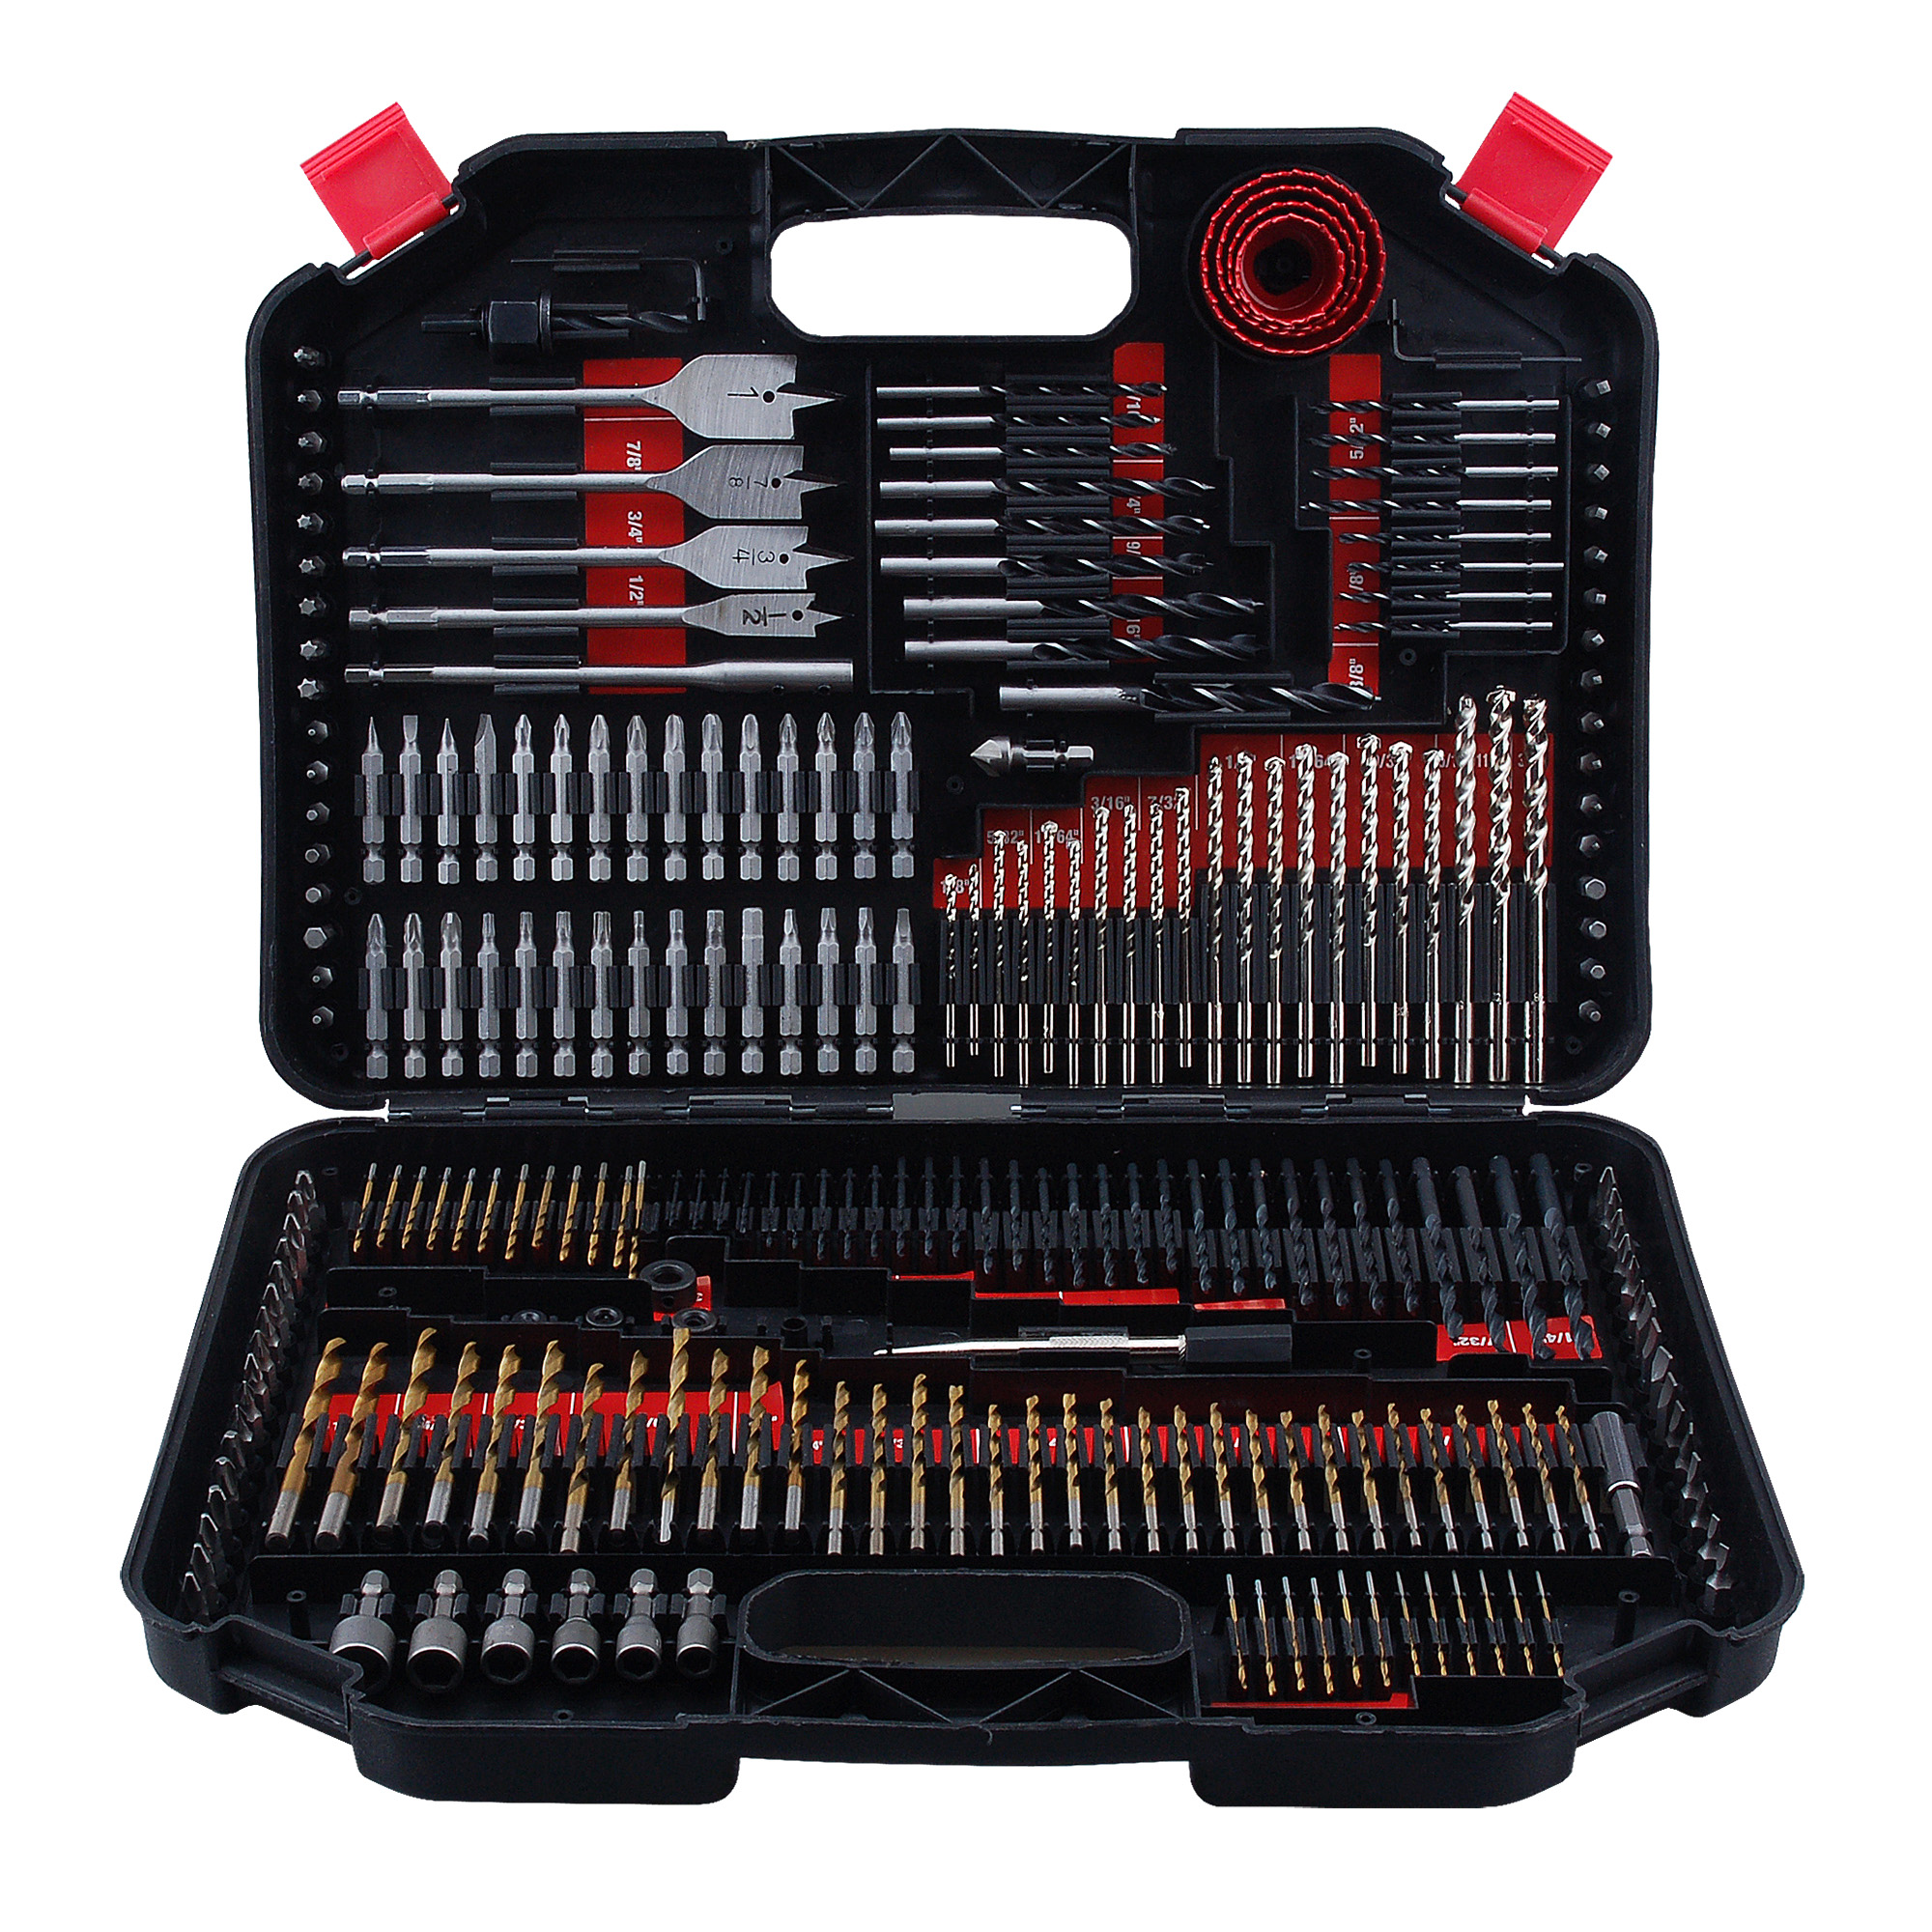 Worker 246pc Impact Drill and Drive Bit Set with Storage Case